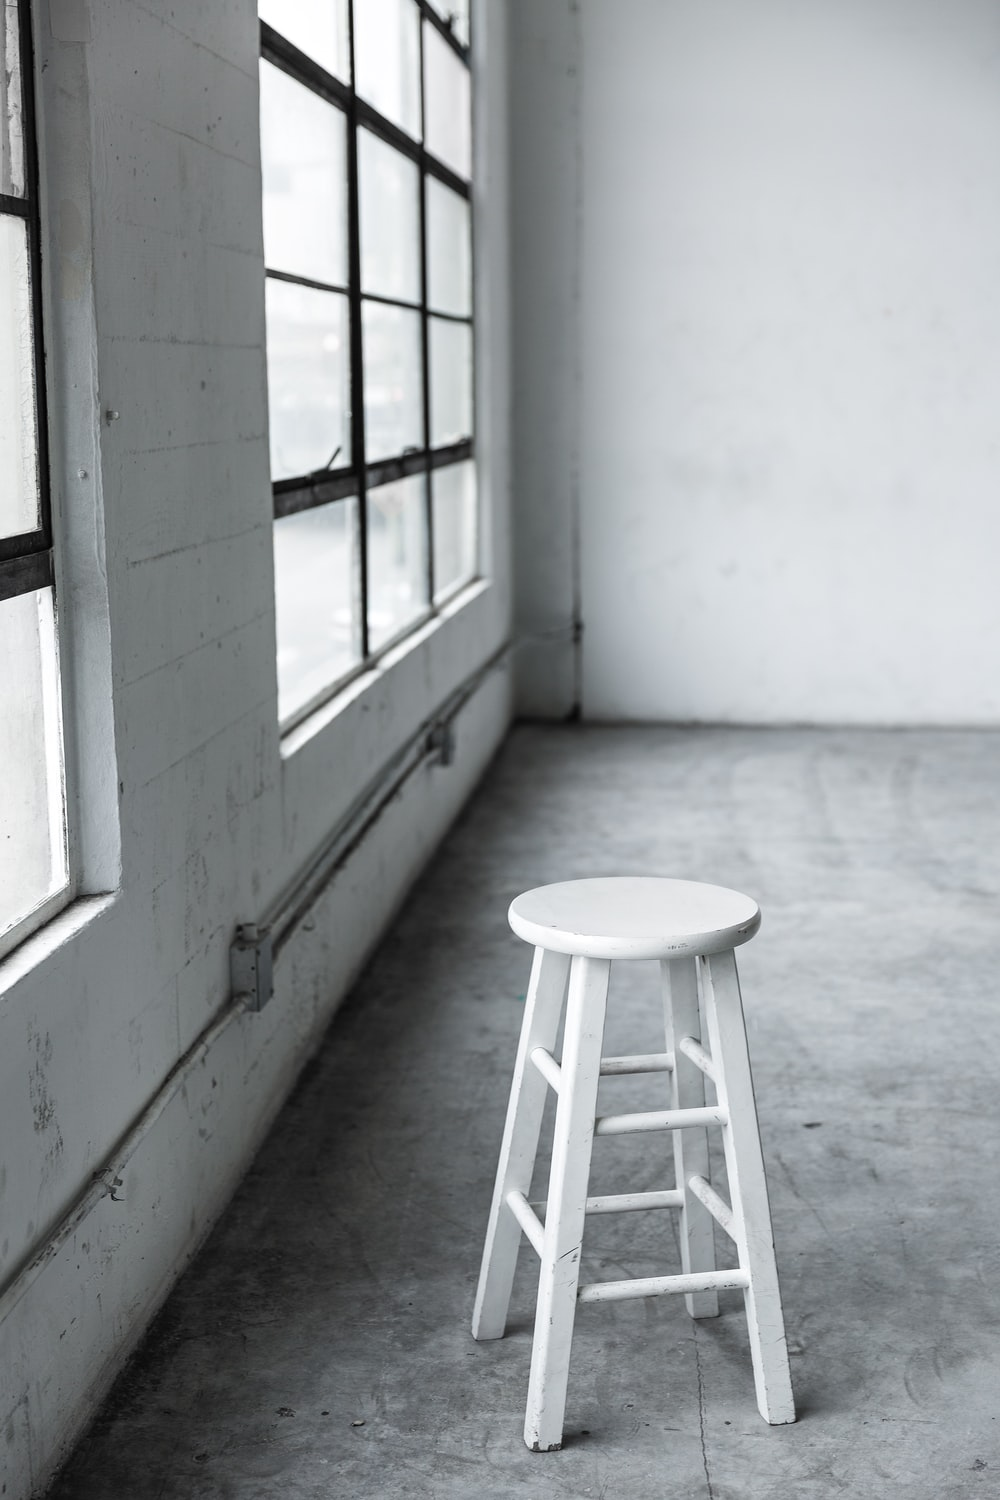 Strange Round White Wooden Stool Near Closed Window Photo Free Pabps2019 Chair Design Images Pabps2019Com